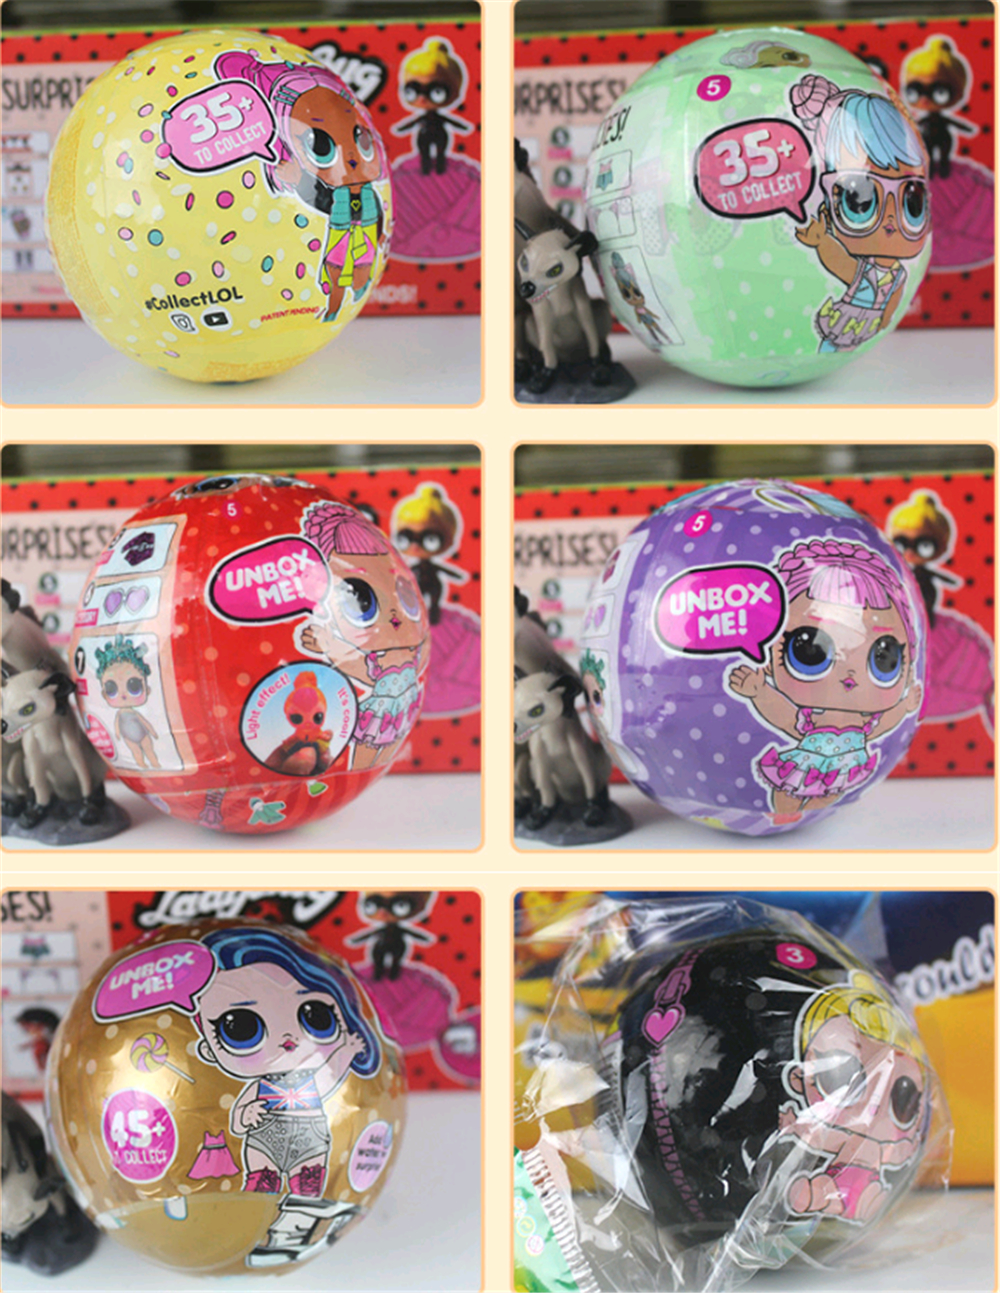 lol Doll 3 Mermaid Figures Little Girls Figures In Ball Lps Pets In Boneca Eggs Ball Toys For Kids Best Gifts